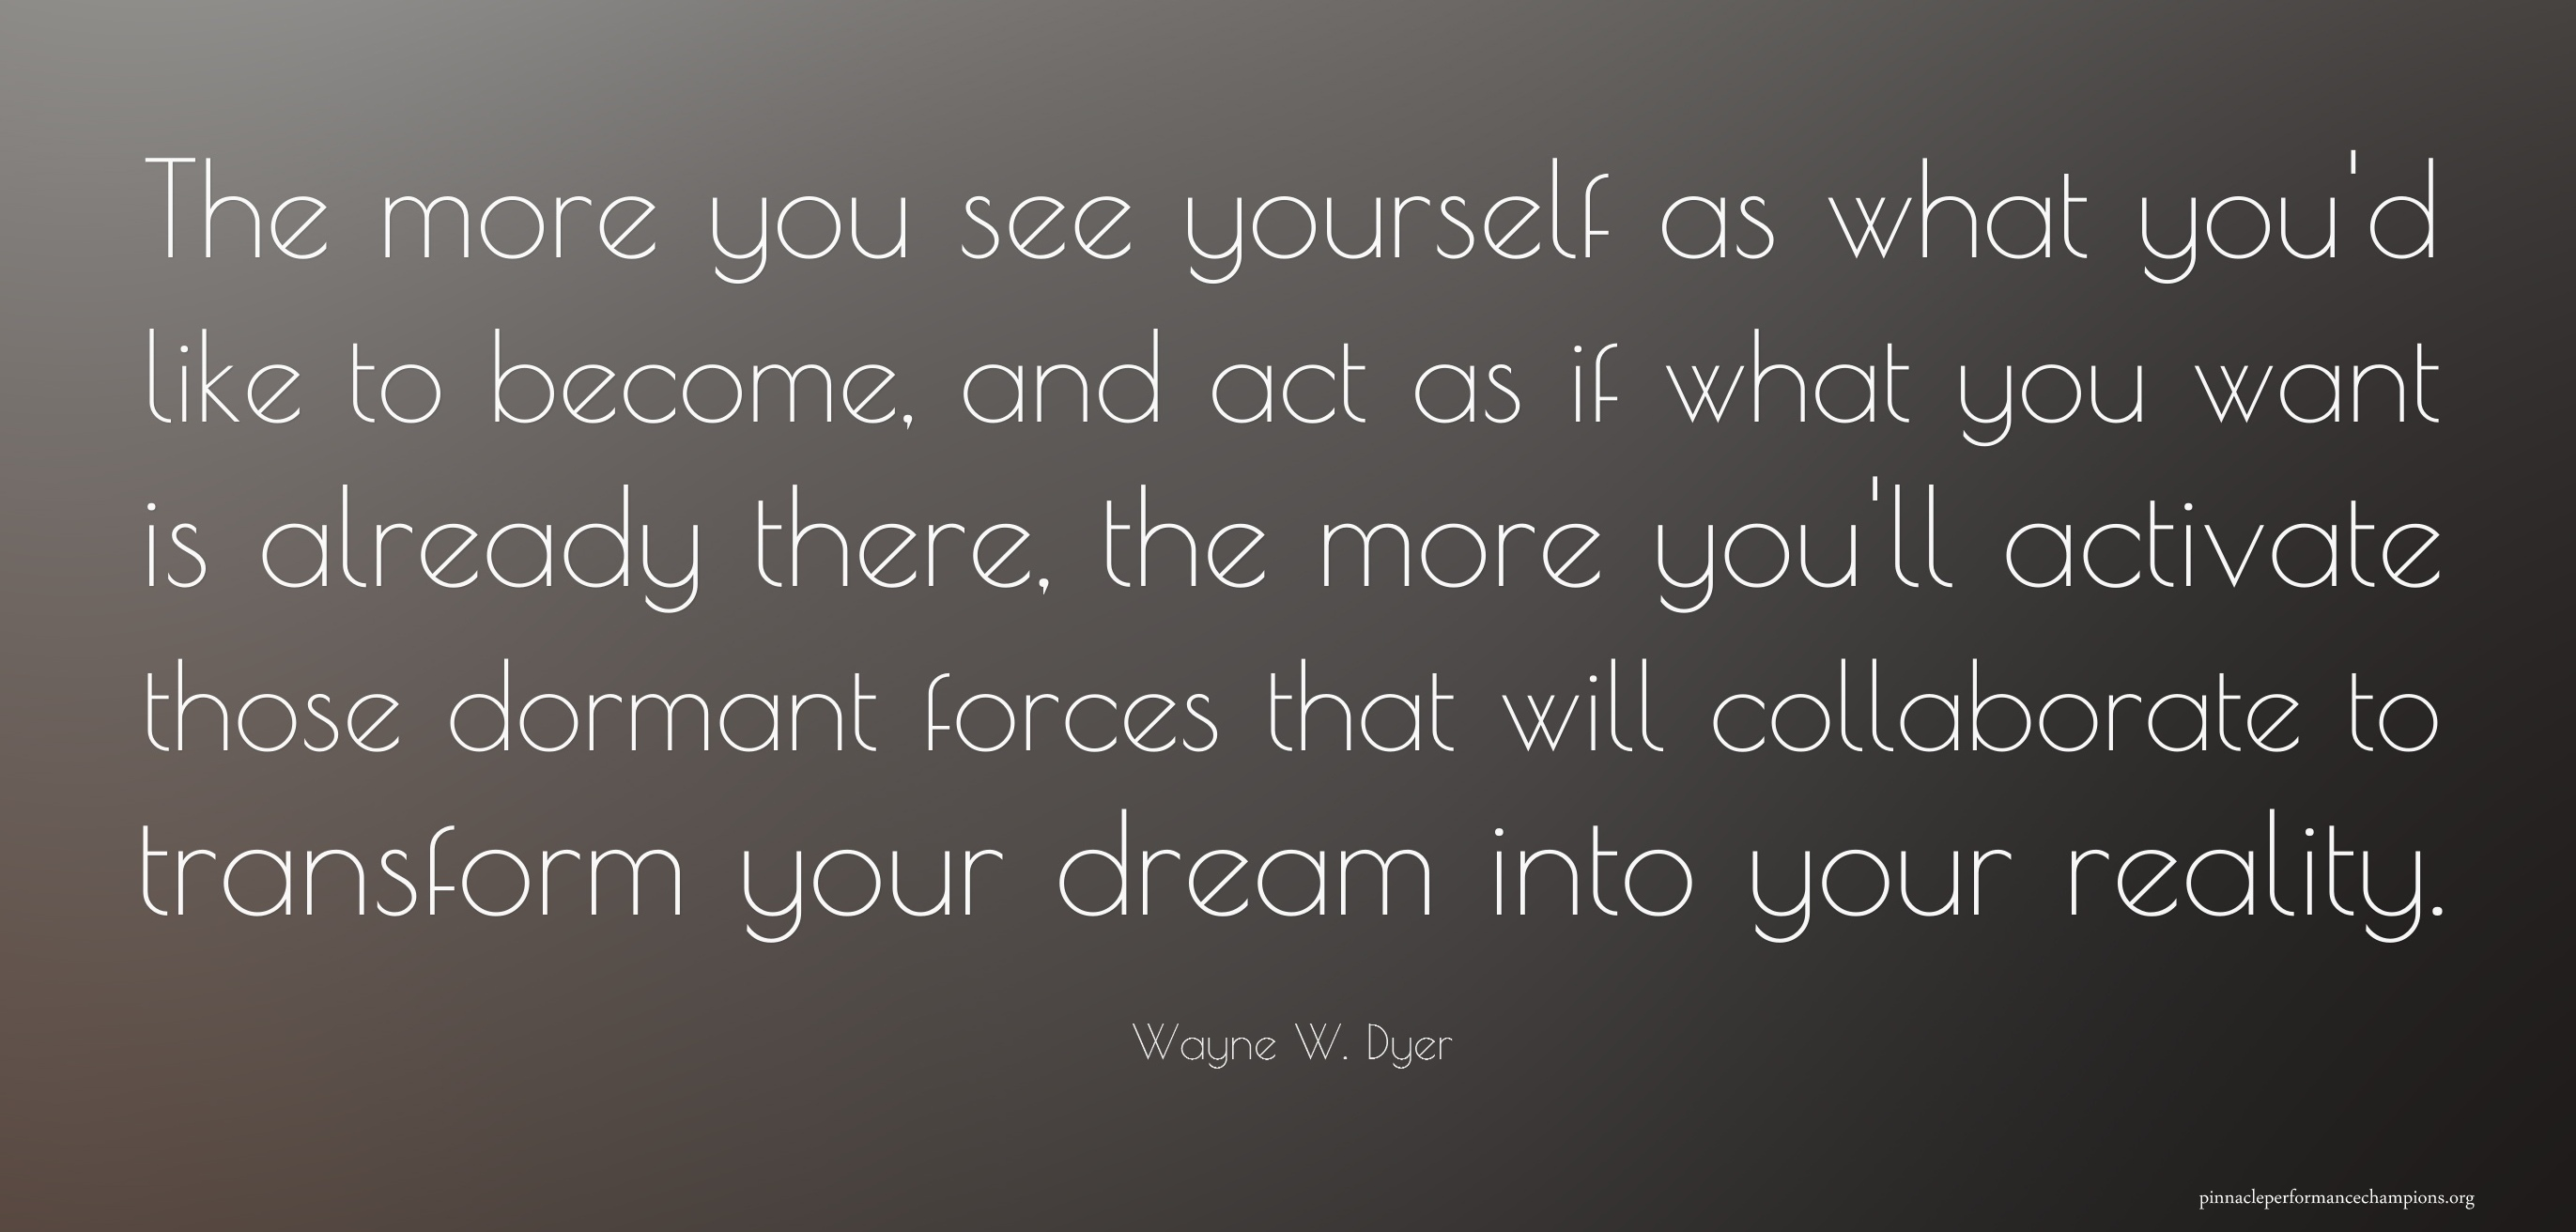 Wayne Dyer Quotes the More You See Yourself